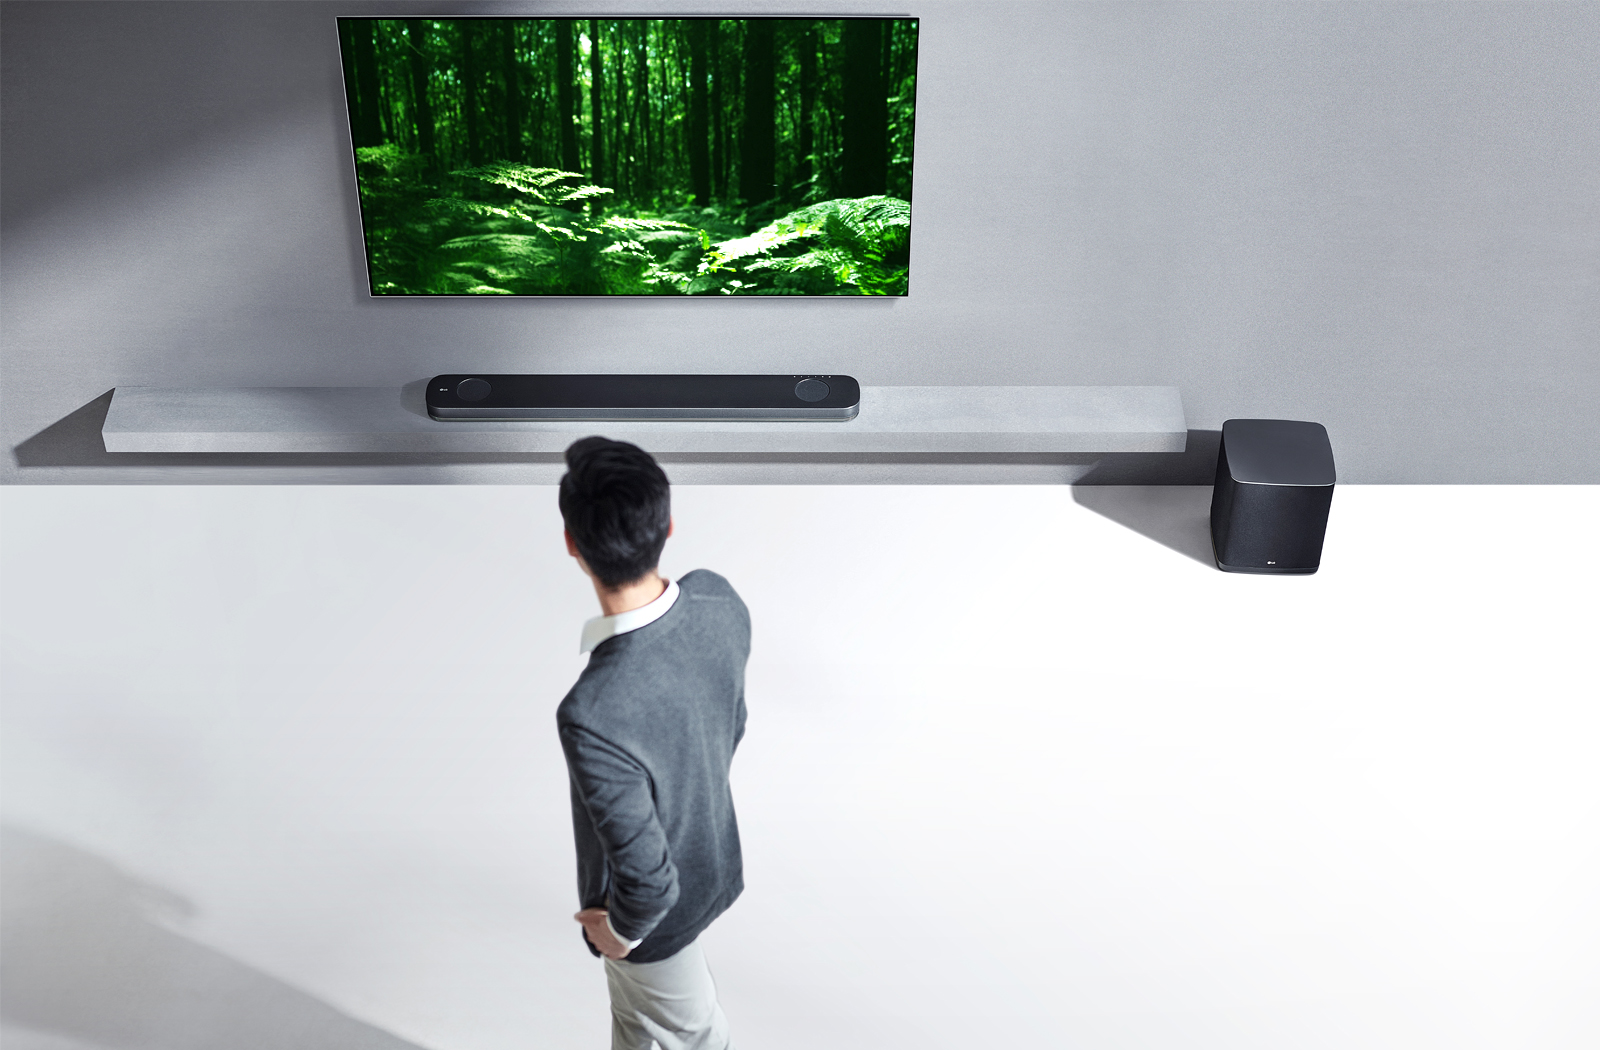 LG OLED TV dolby atmos